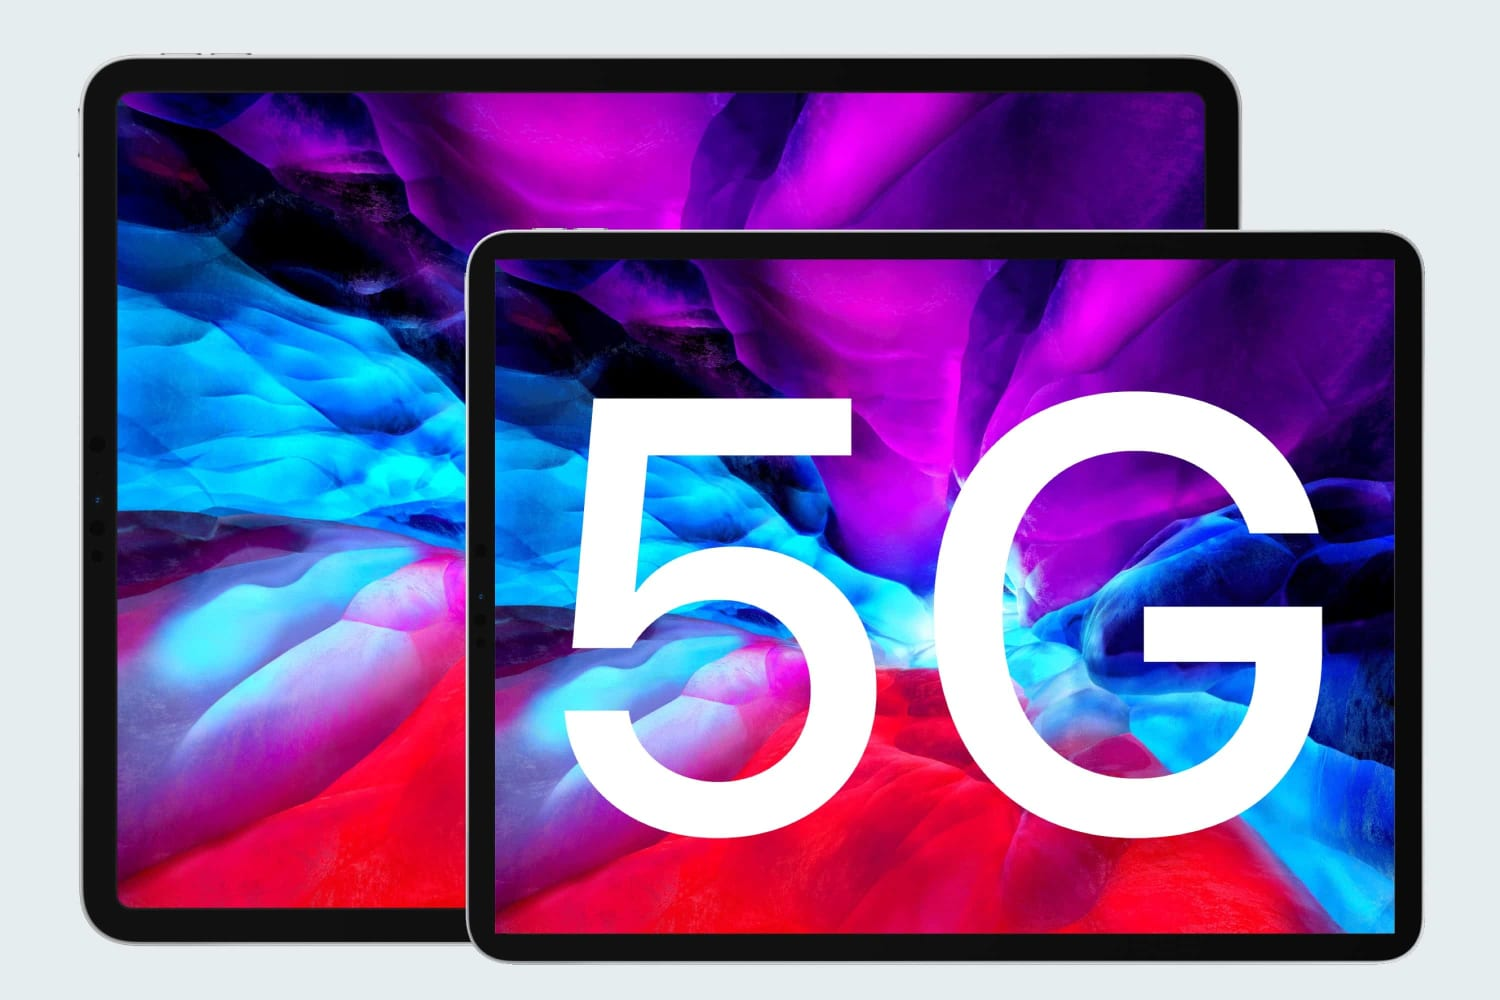 apple-may-make-waves-with-a-5g-mmwave-ipad-pro-in-2021-20201126-1